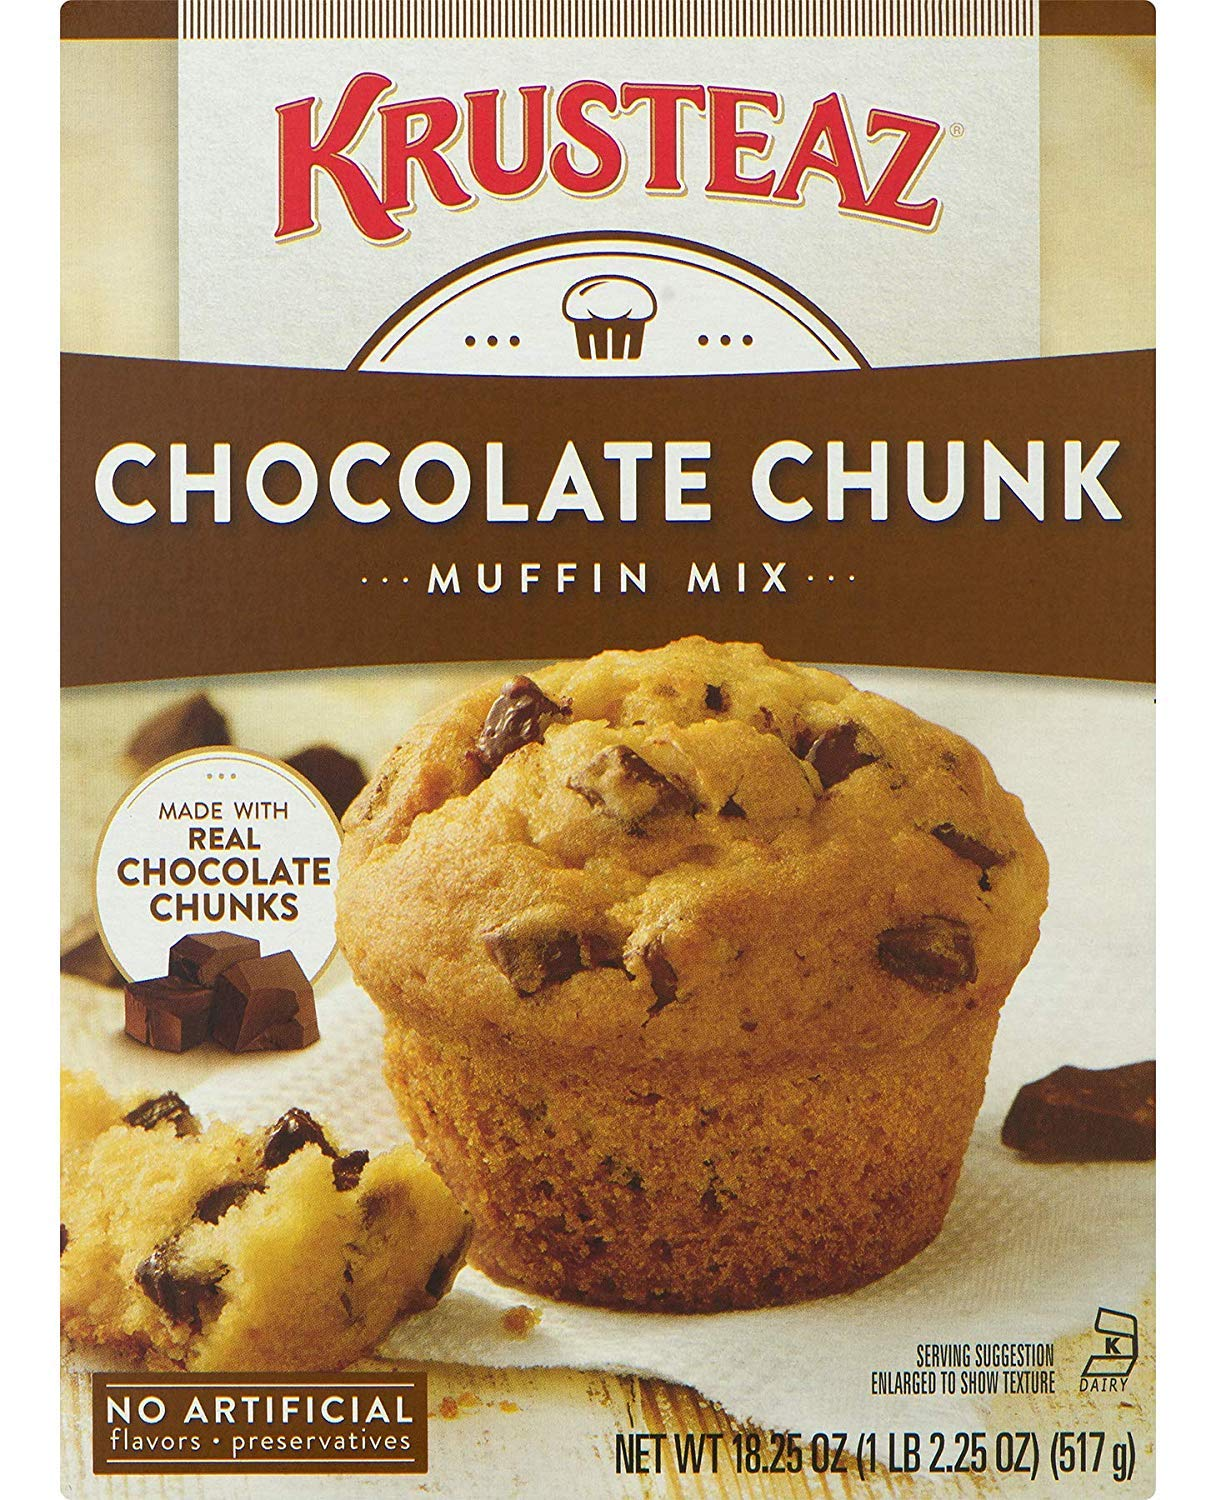 Krusteaz Chocolate Chunk Muffin Mix - No Artificial Flavors/Preservatives - 18.25 OZ Box (Pack of 6)